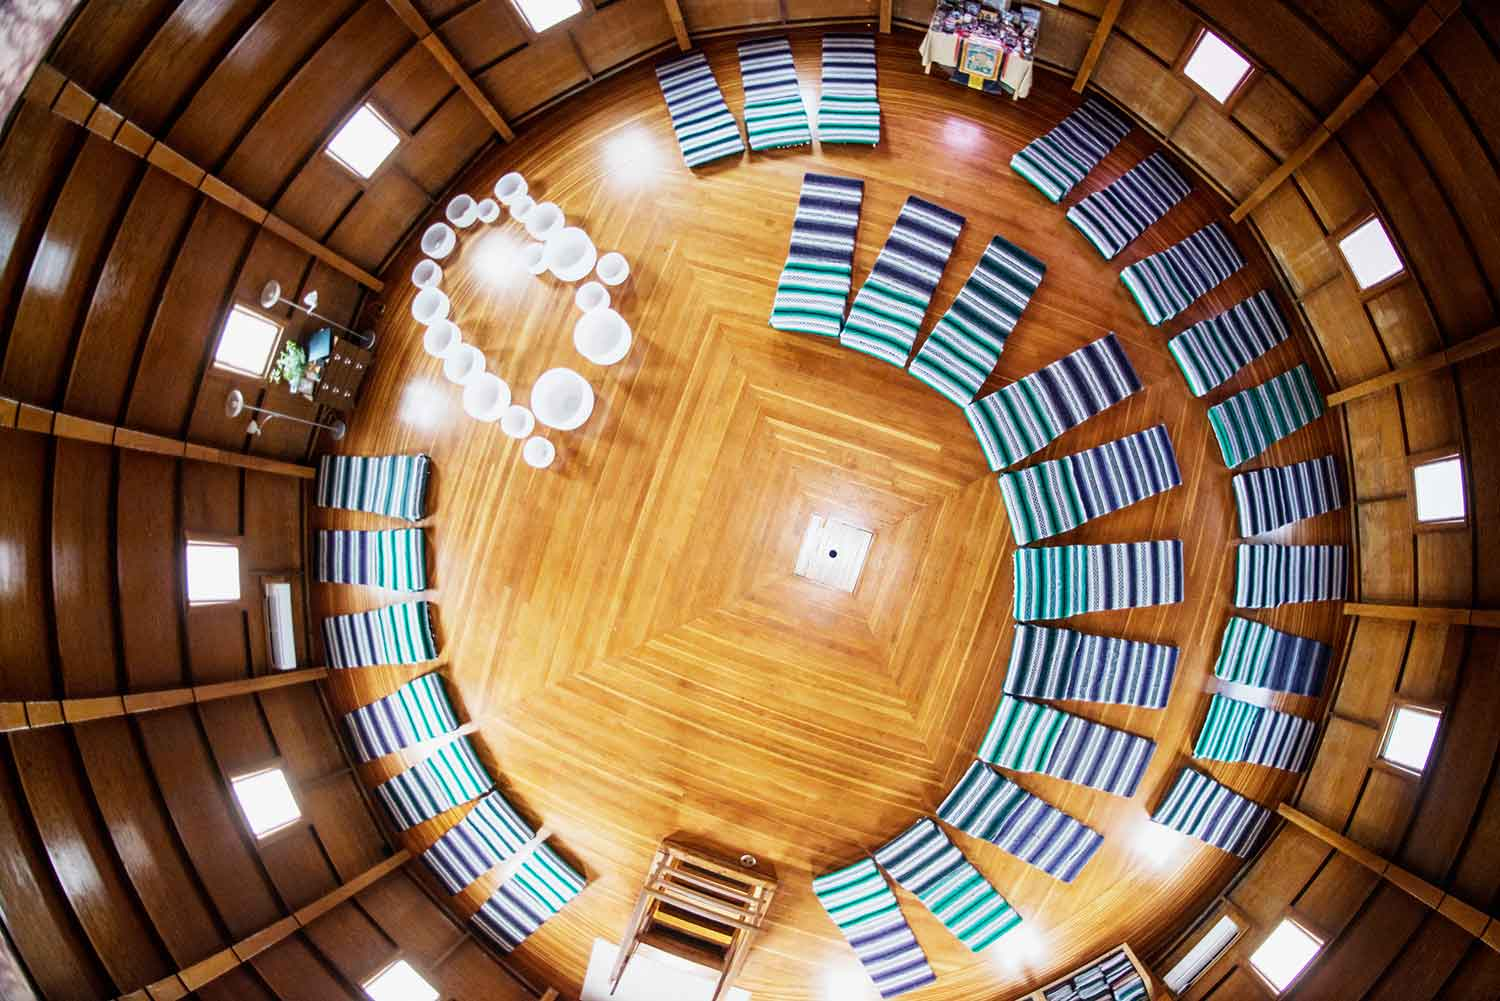 An overhead view of the sound chamber where sound baths are conducted at the Integratron. [Image courtesy of Integratron]